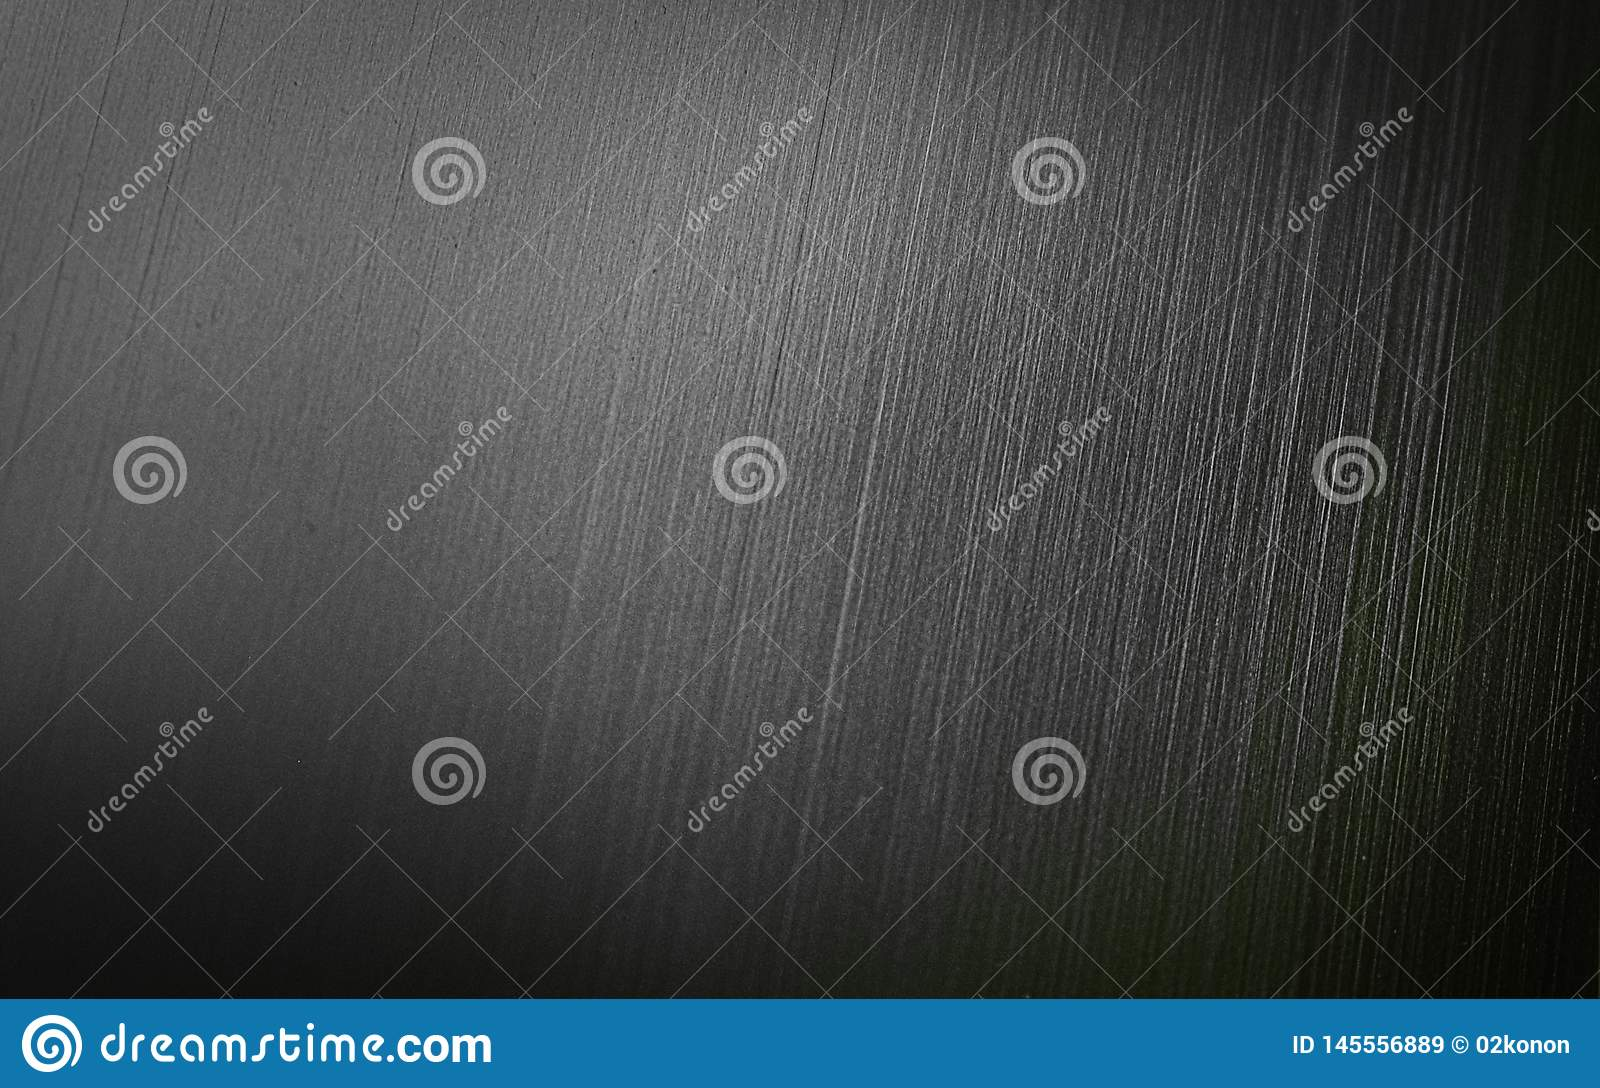 Metal surface, steel rough background, metal alloy